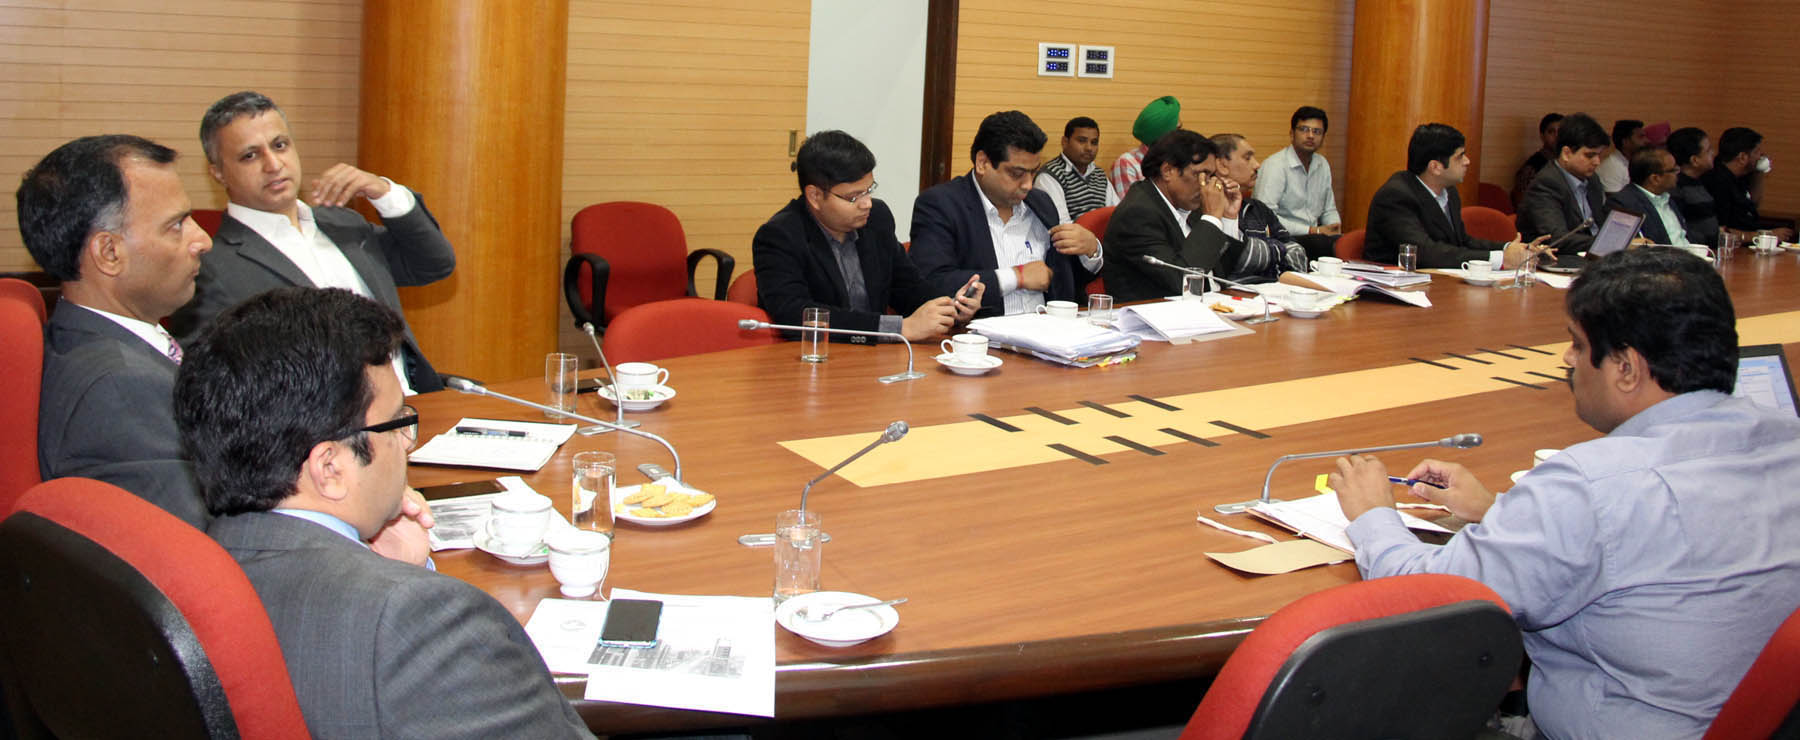 The Adviser to the Administrator, UT, Chandigarh, Mr. Vijay Dev presiding over the meeting regarding -PAN City Solution ( Under Smart City Mission)-Safe City and Integrated Traffic Management at UT Secretariat, Chandigarh on Tuesday, November 24, 2015.